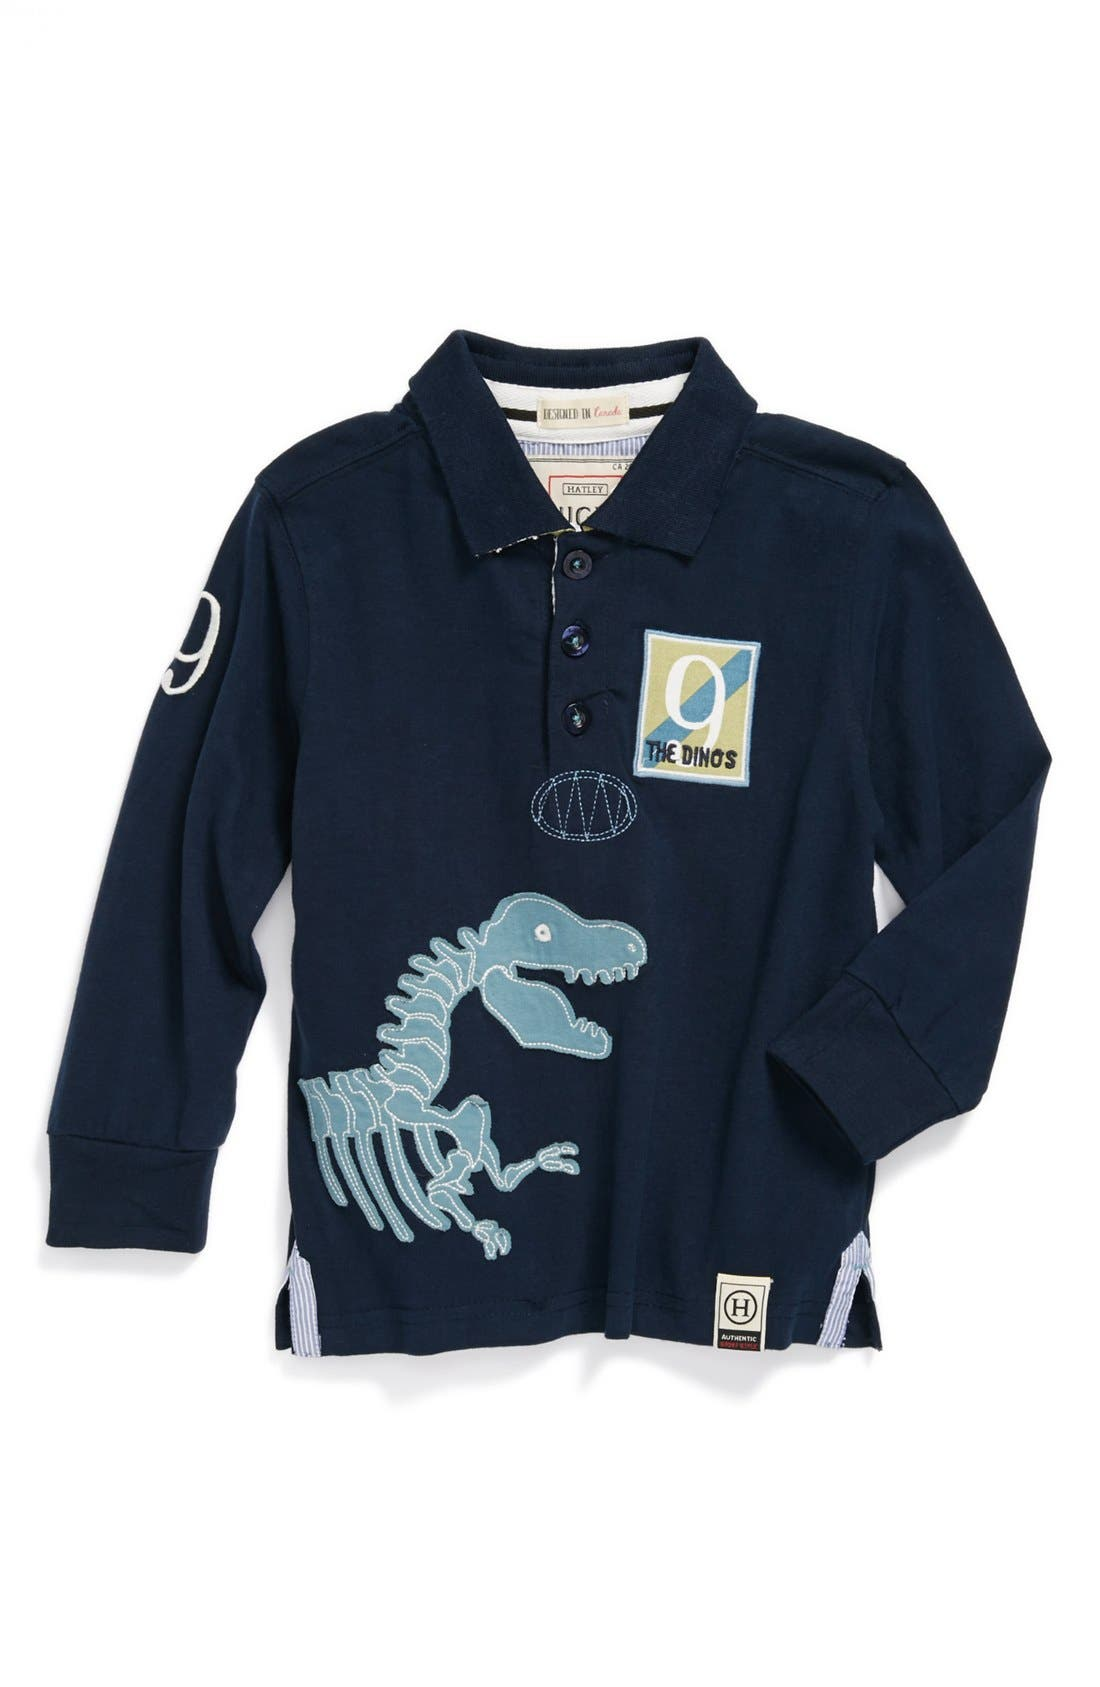 Alternate Image 1 Selected - Hatley 'Dino' Rugby Shirt (Toddler Boys)